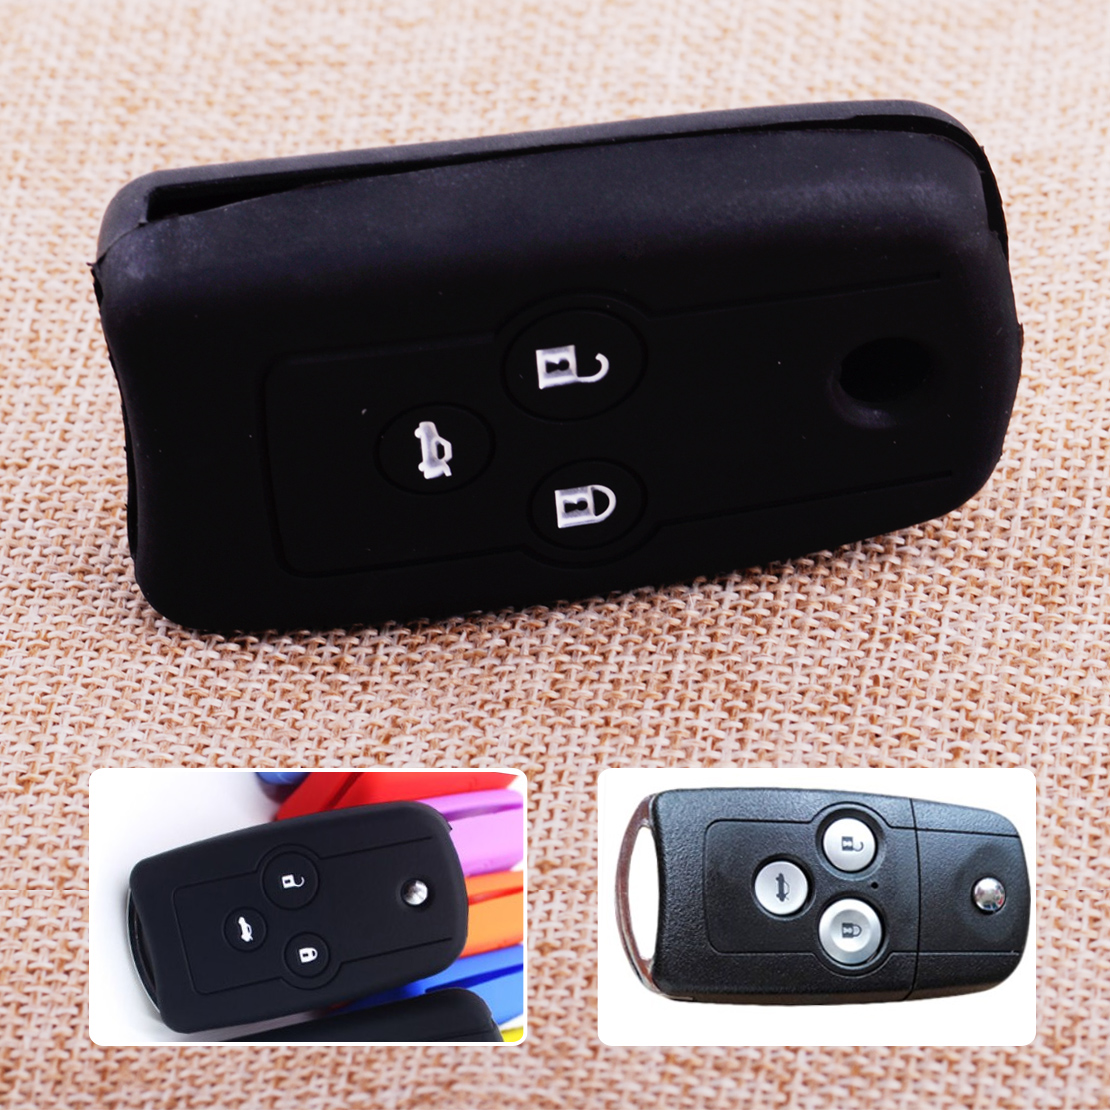 Cheap Acura Tl For Sale: Aliexpress.com : Buy CITALL Black 3 Buttons Silicone Flip